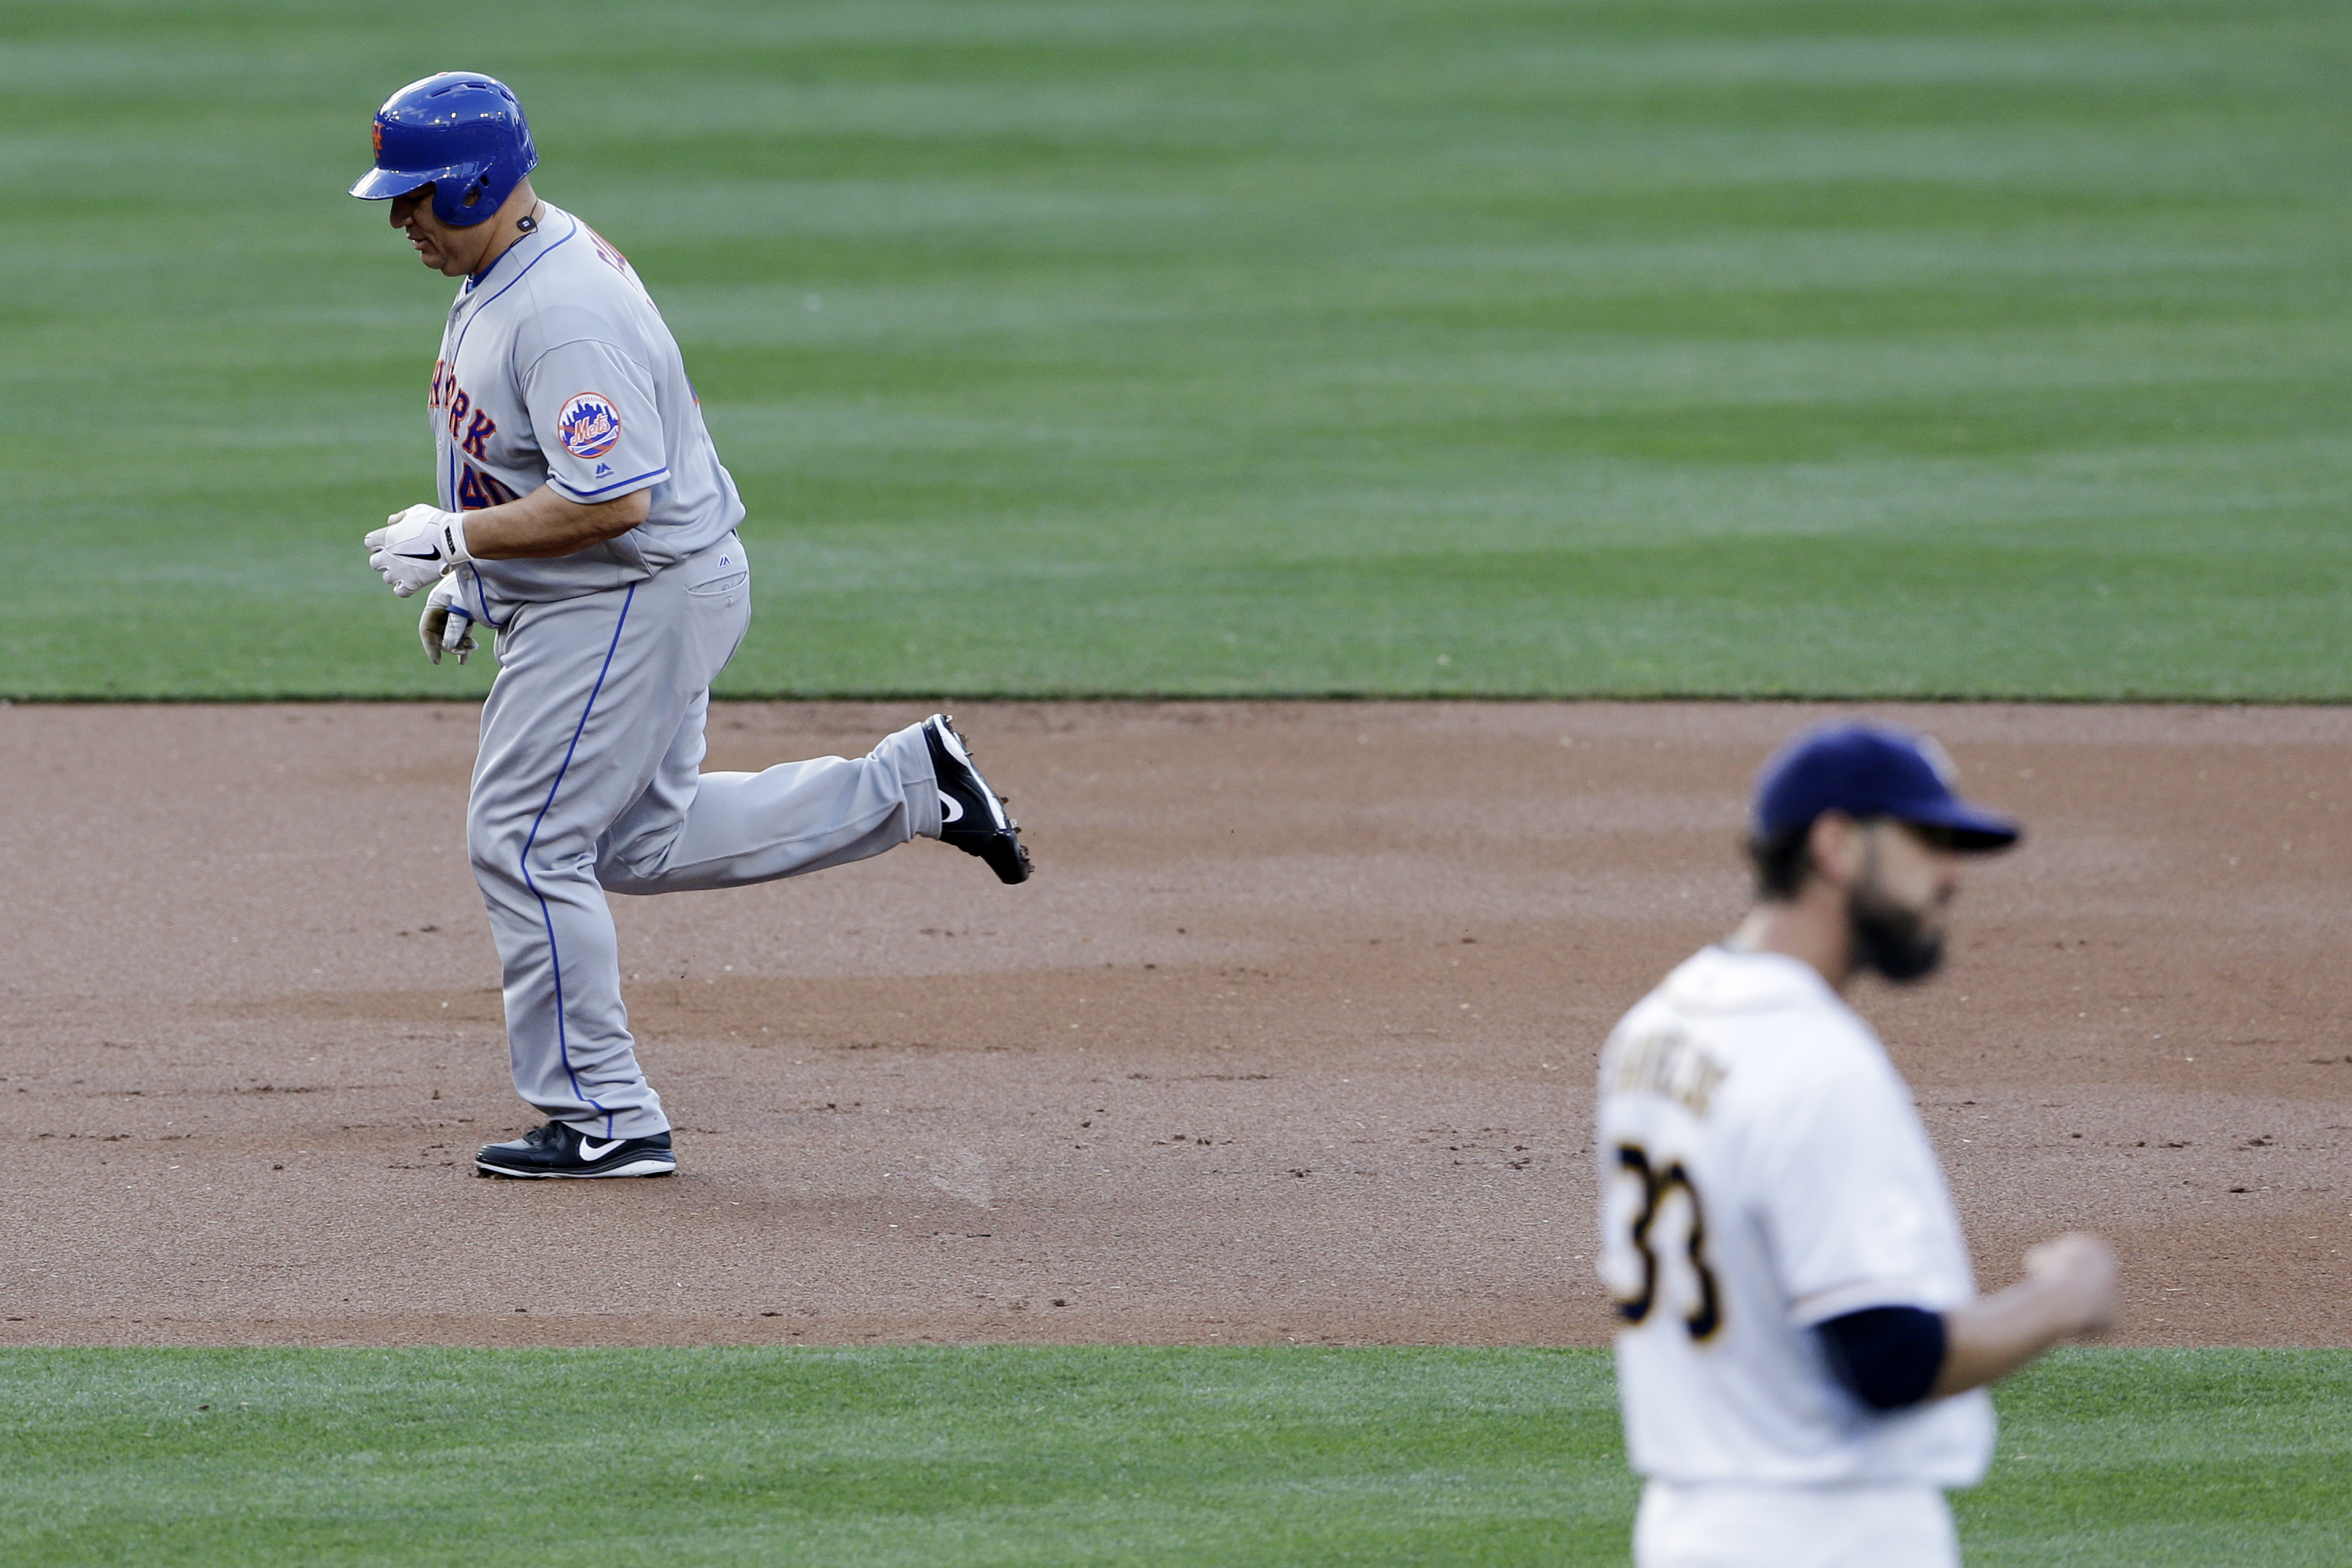 New York Mets' Bartolo Colon, left, rounds the bases after hitting a two-run home run off San Diego Padres starting pitcher James Shields, right, during the second inning of a baseball game Saturday, May 7, 2016, in San Diego. (AP Photo/Gregory Bull)